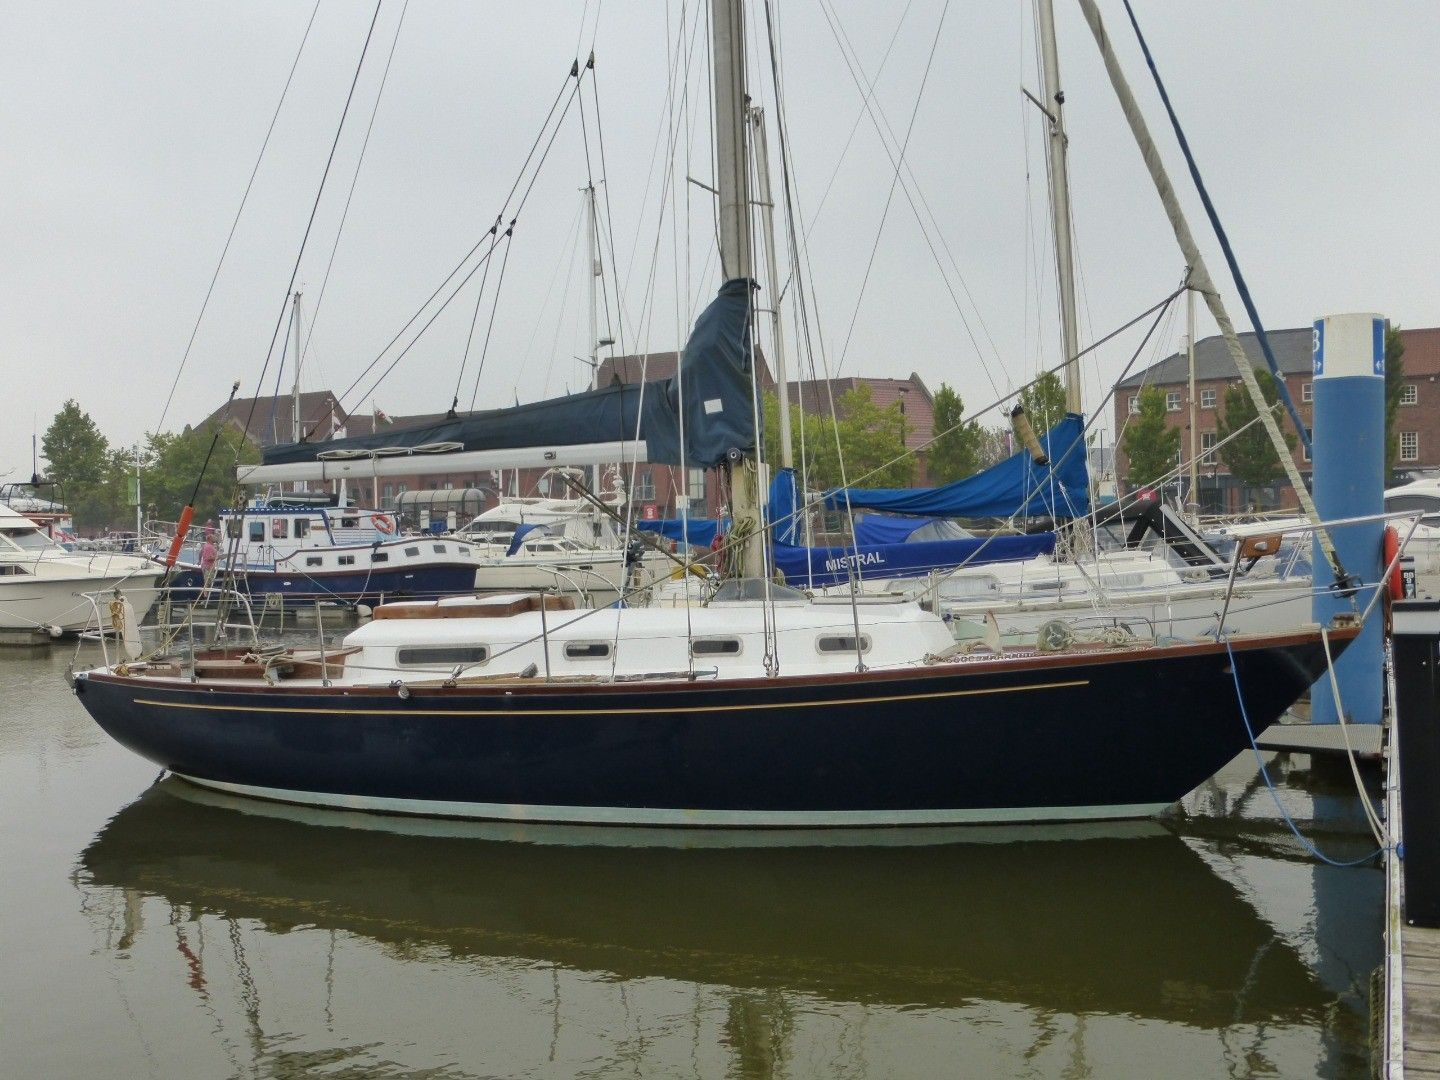 Holman and Pye North Sea 24